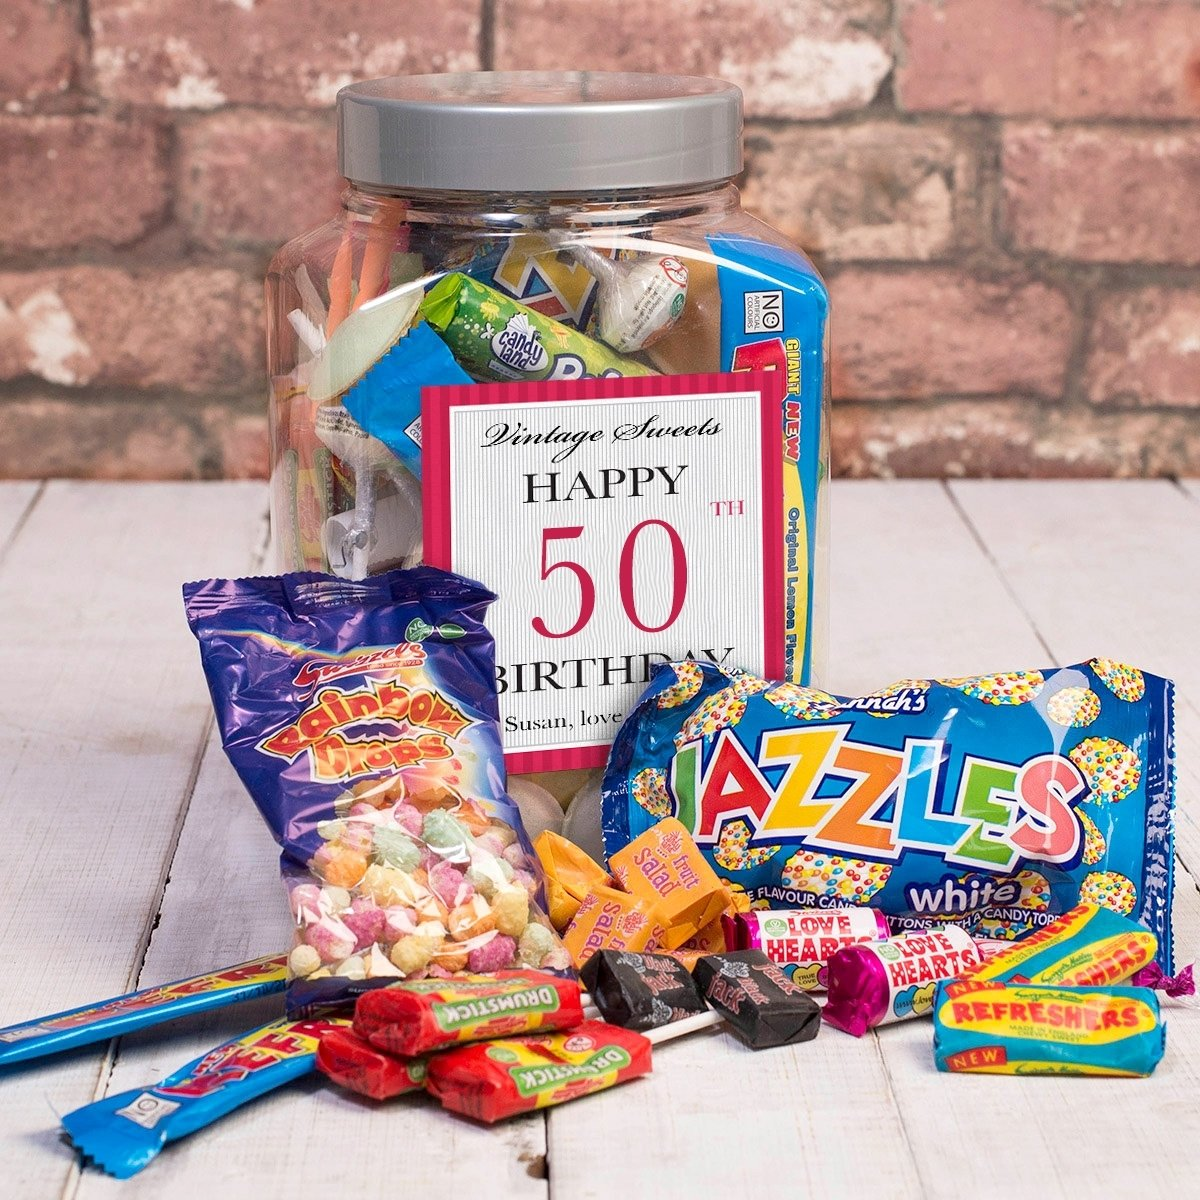 10 Awesome 50Th Birthday Gift Ideas For Brother 50th Gifts Present Gettingpersonal Co Uk